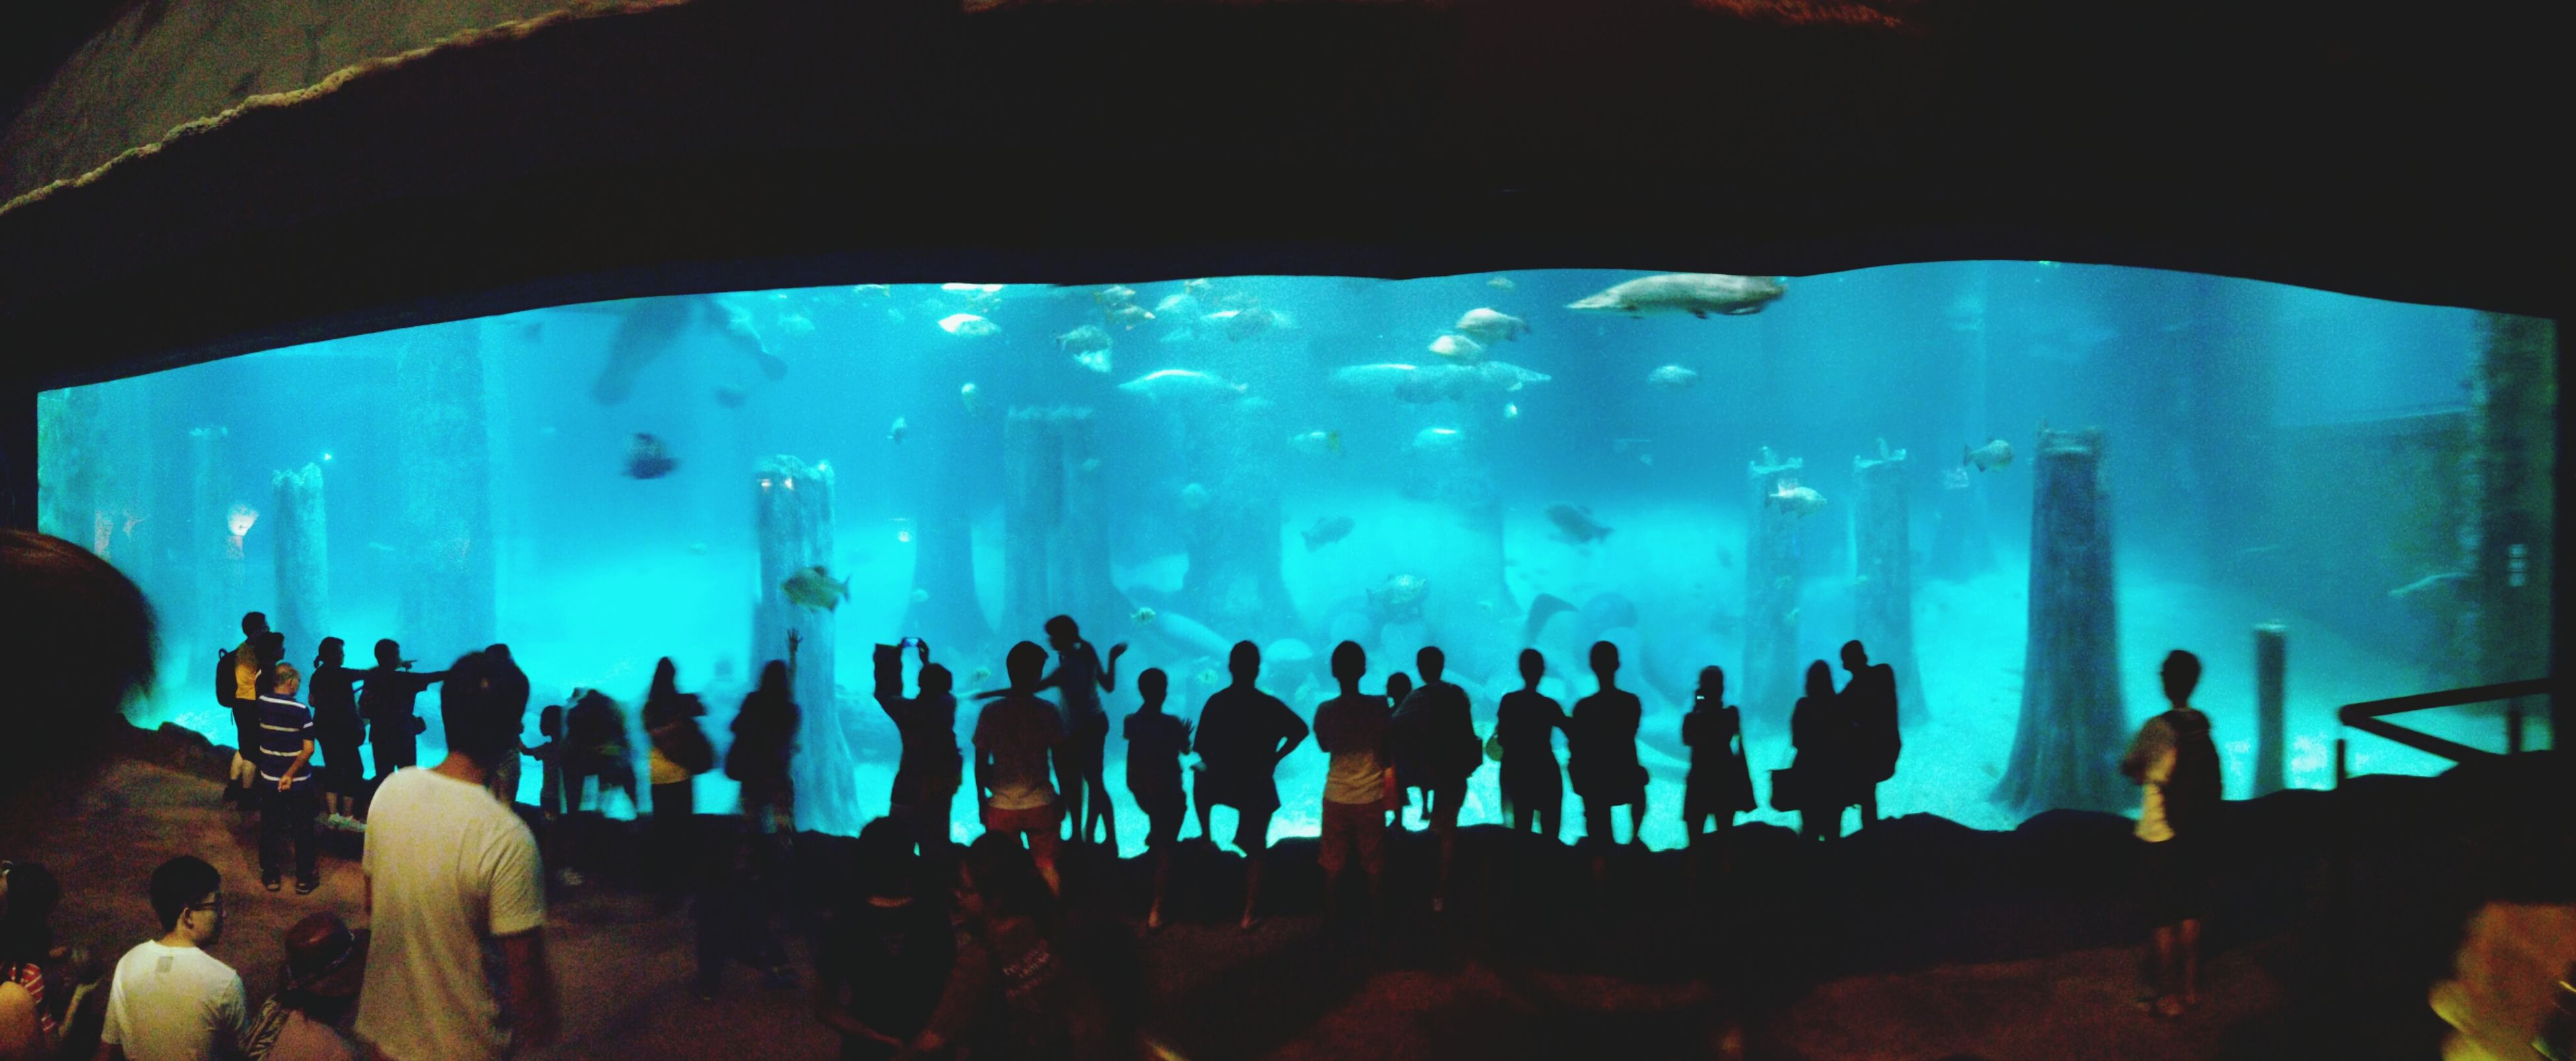 indoors, blue, men, lifestyles, leisure activity, water, large group of people, underwater, person, transparent, unrecognizable person, glass - material, standing, silhouette, aquarium, low angle view, panoramic, nature